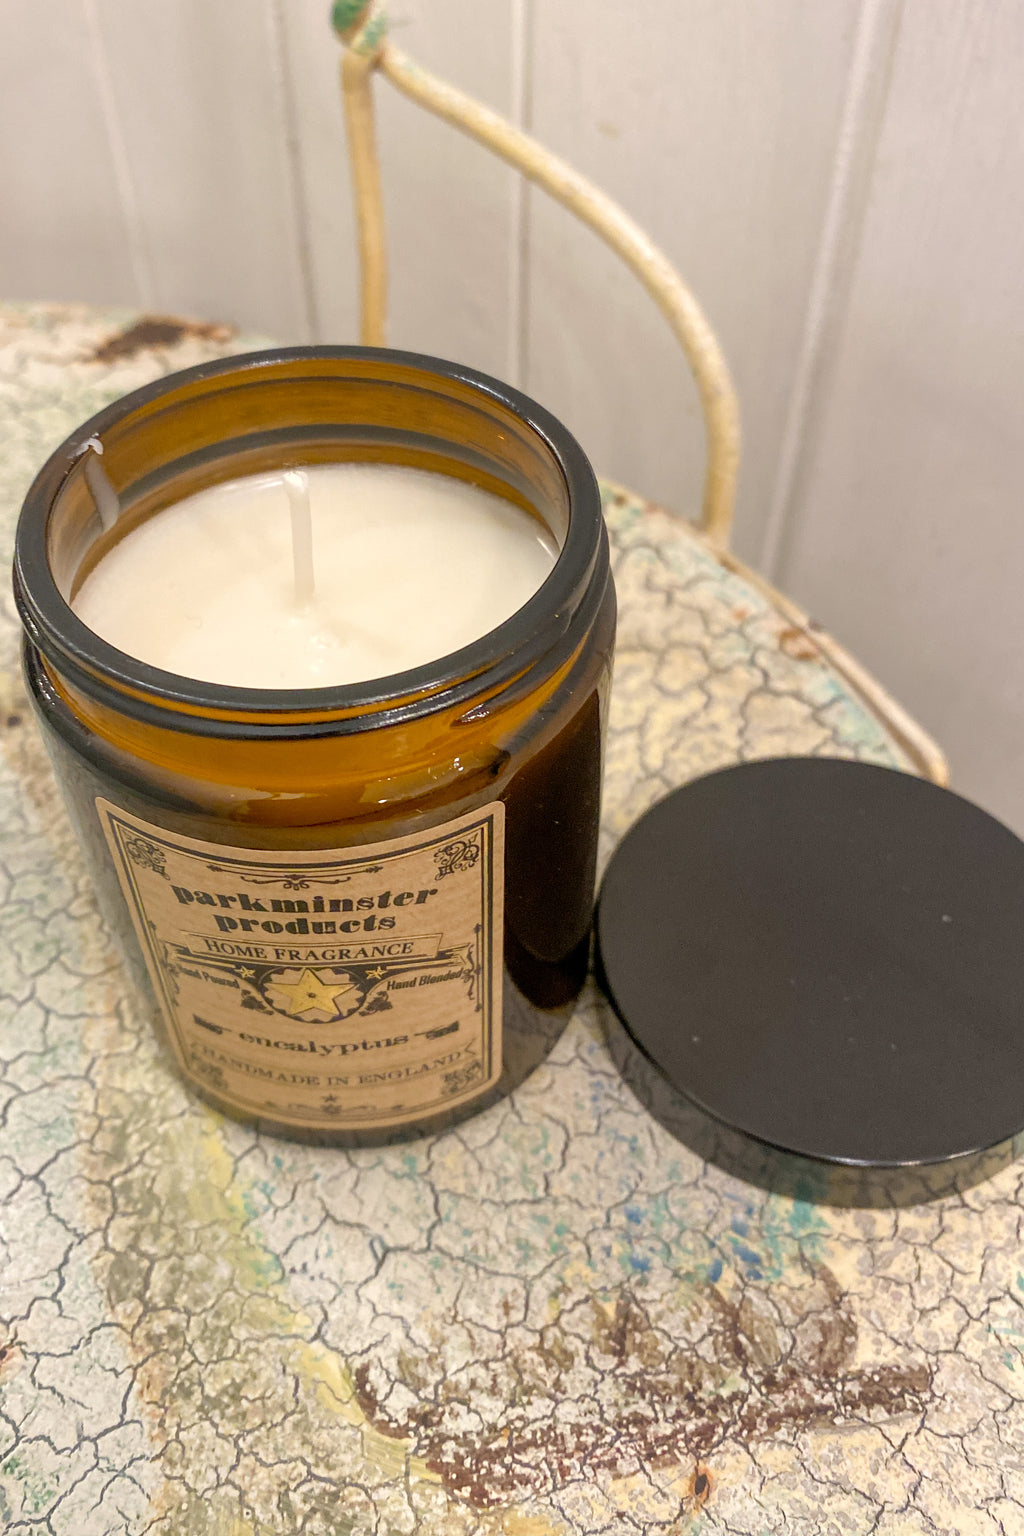 Parkminster Eucalyptus Apothecary Jar Candle - The Mercantile London